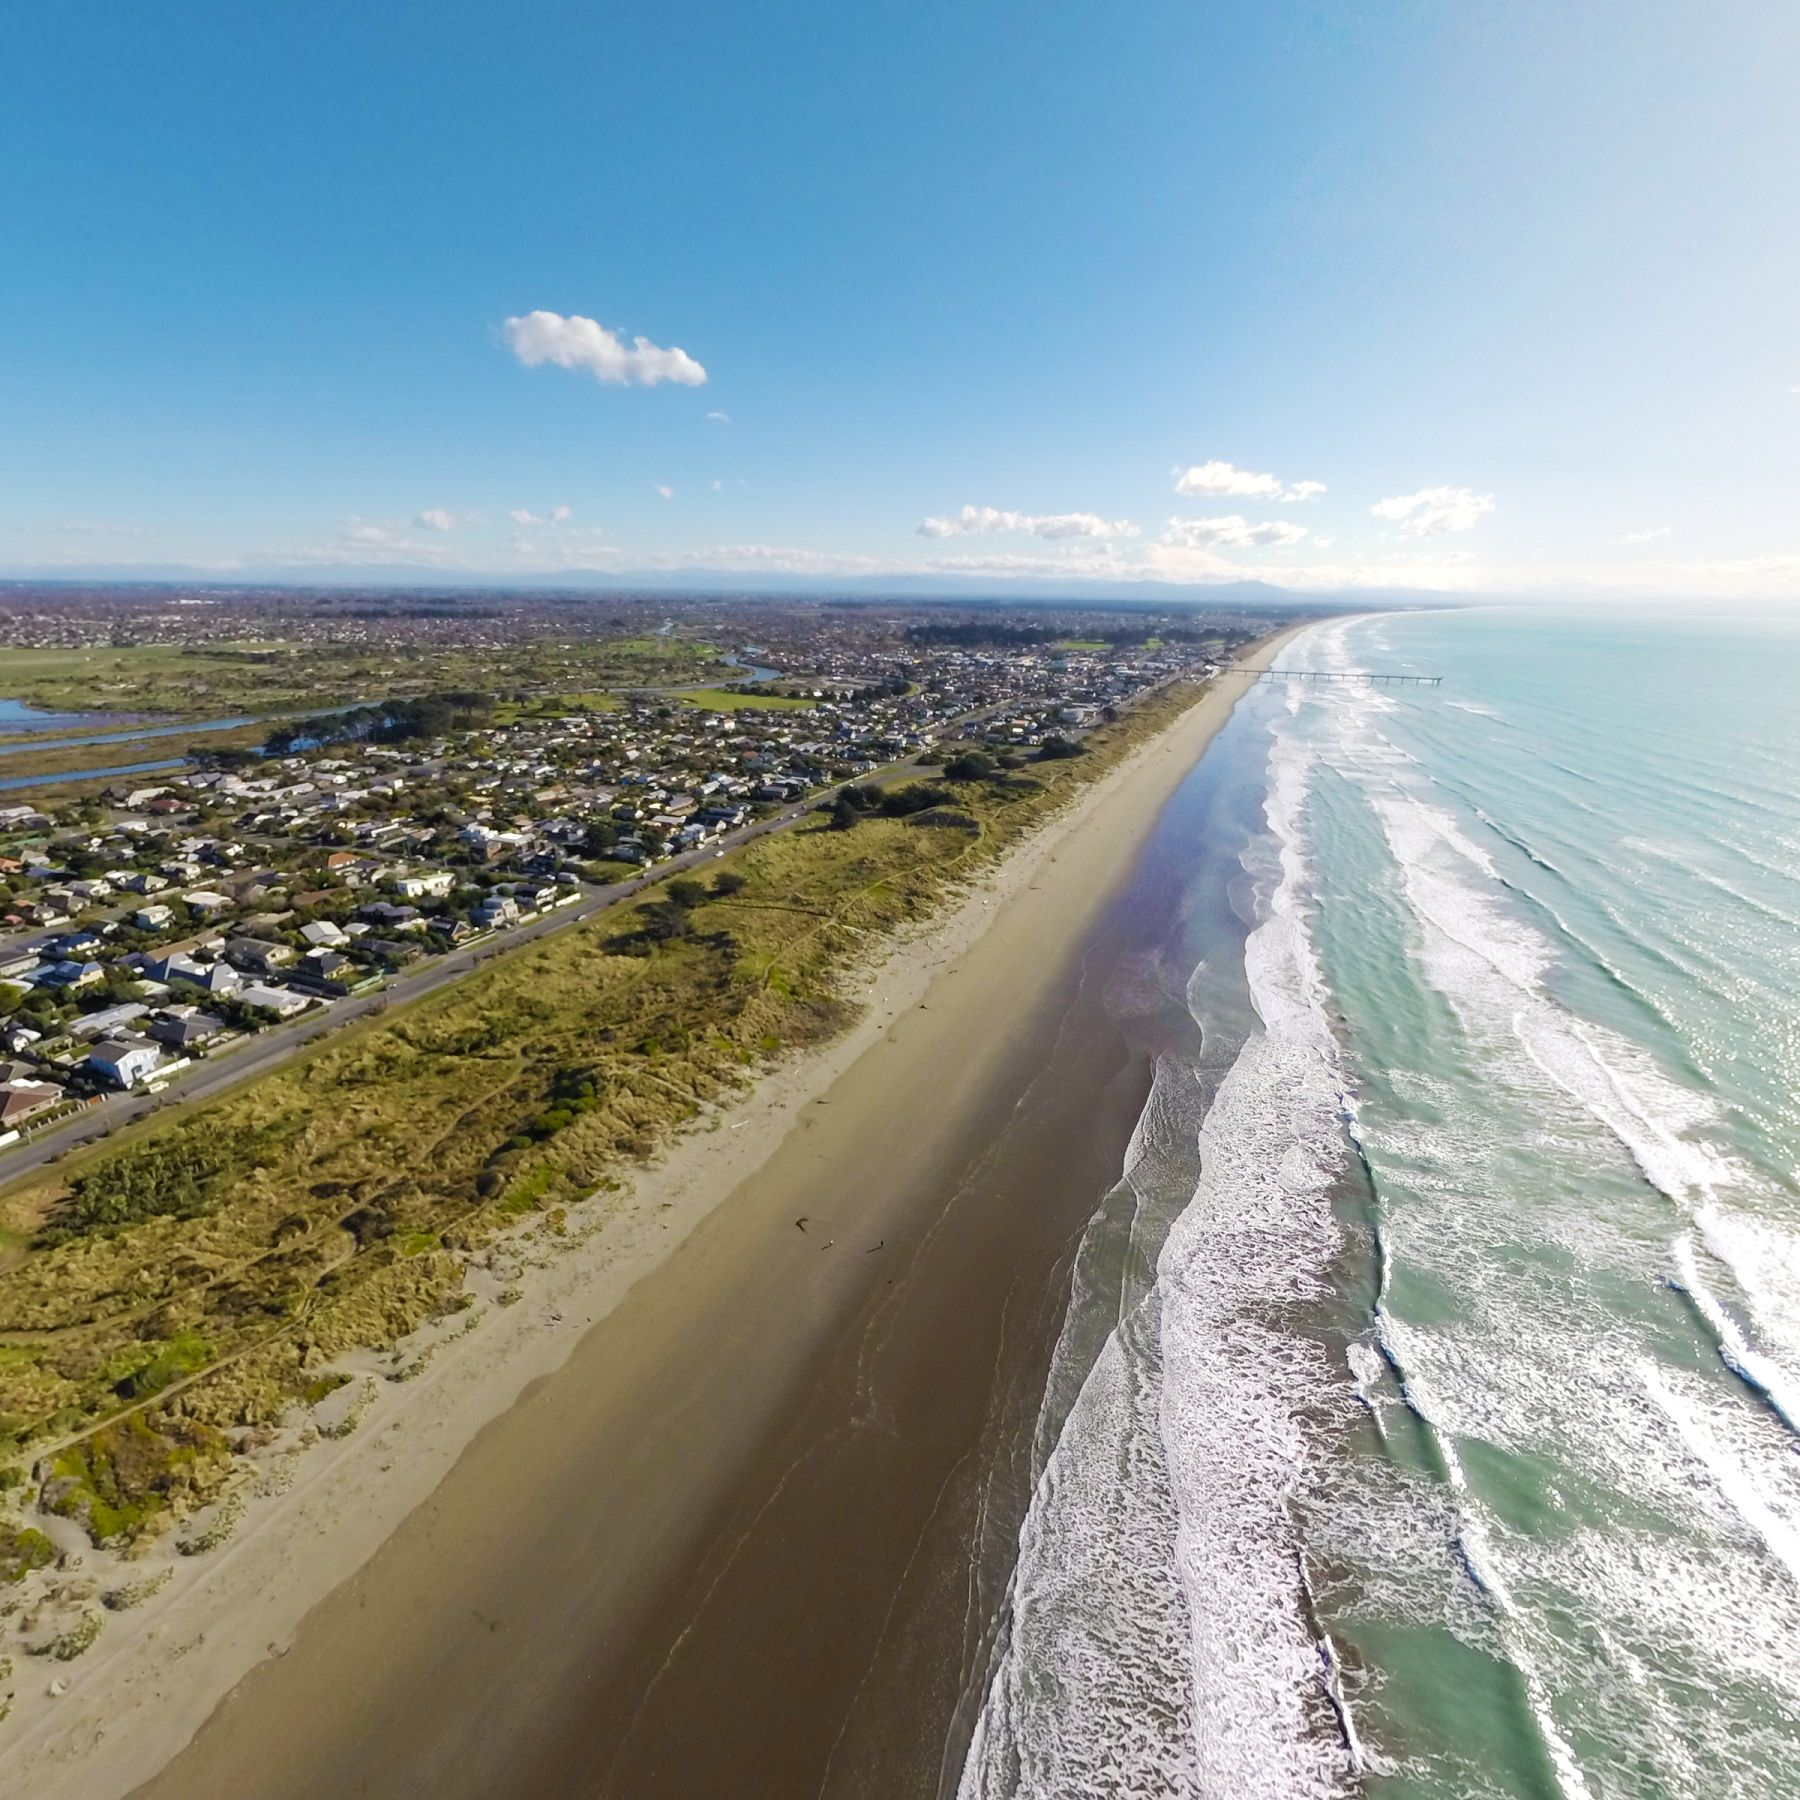 Aerial Panoramas A New Way To View An Emerging City New Brighton Beach Christchurch New Zealand Christchurch